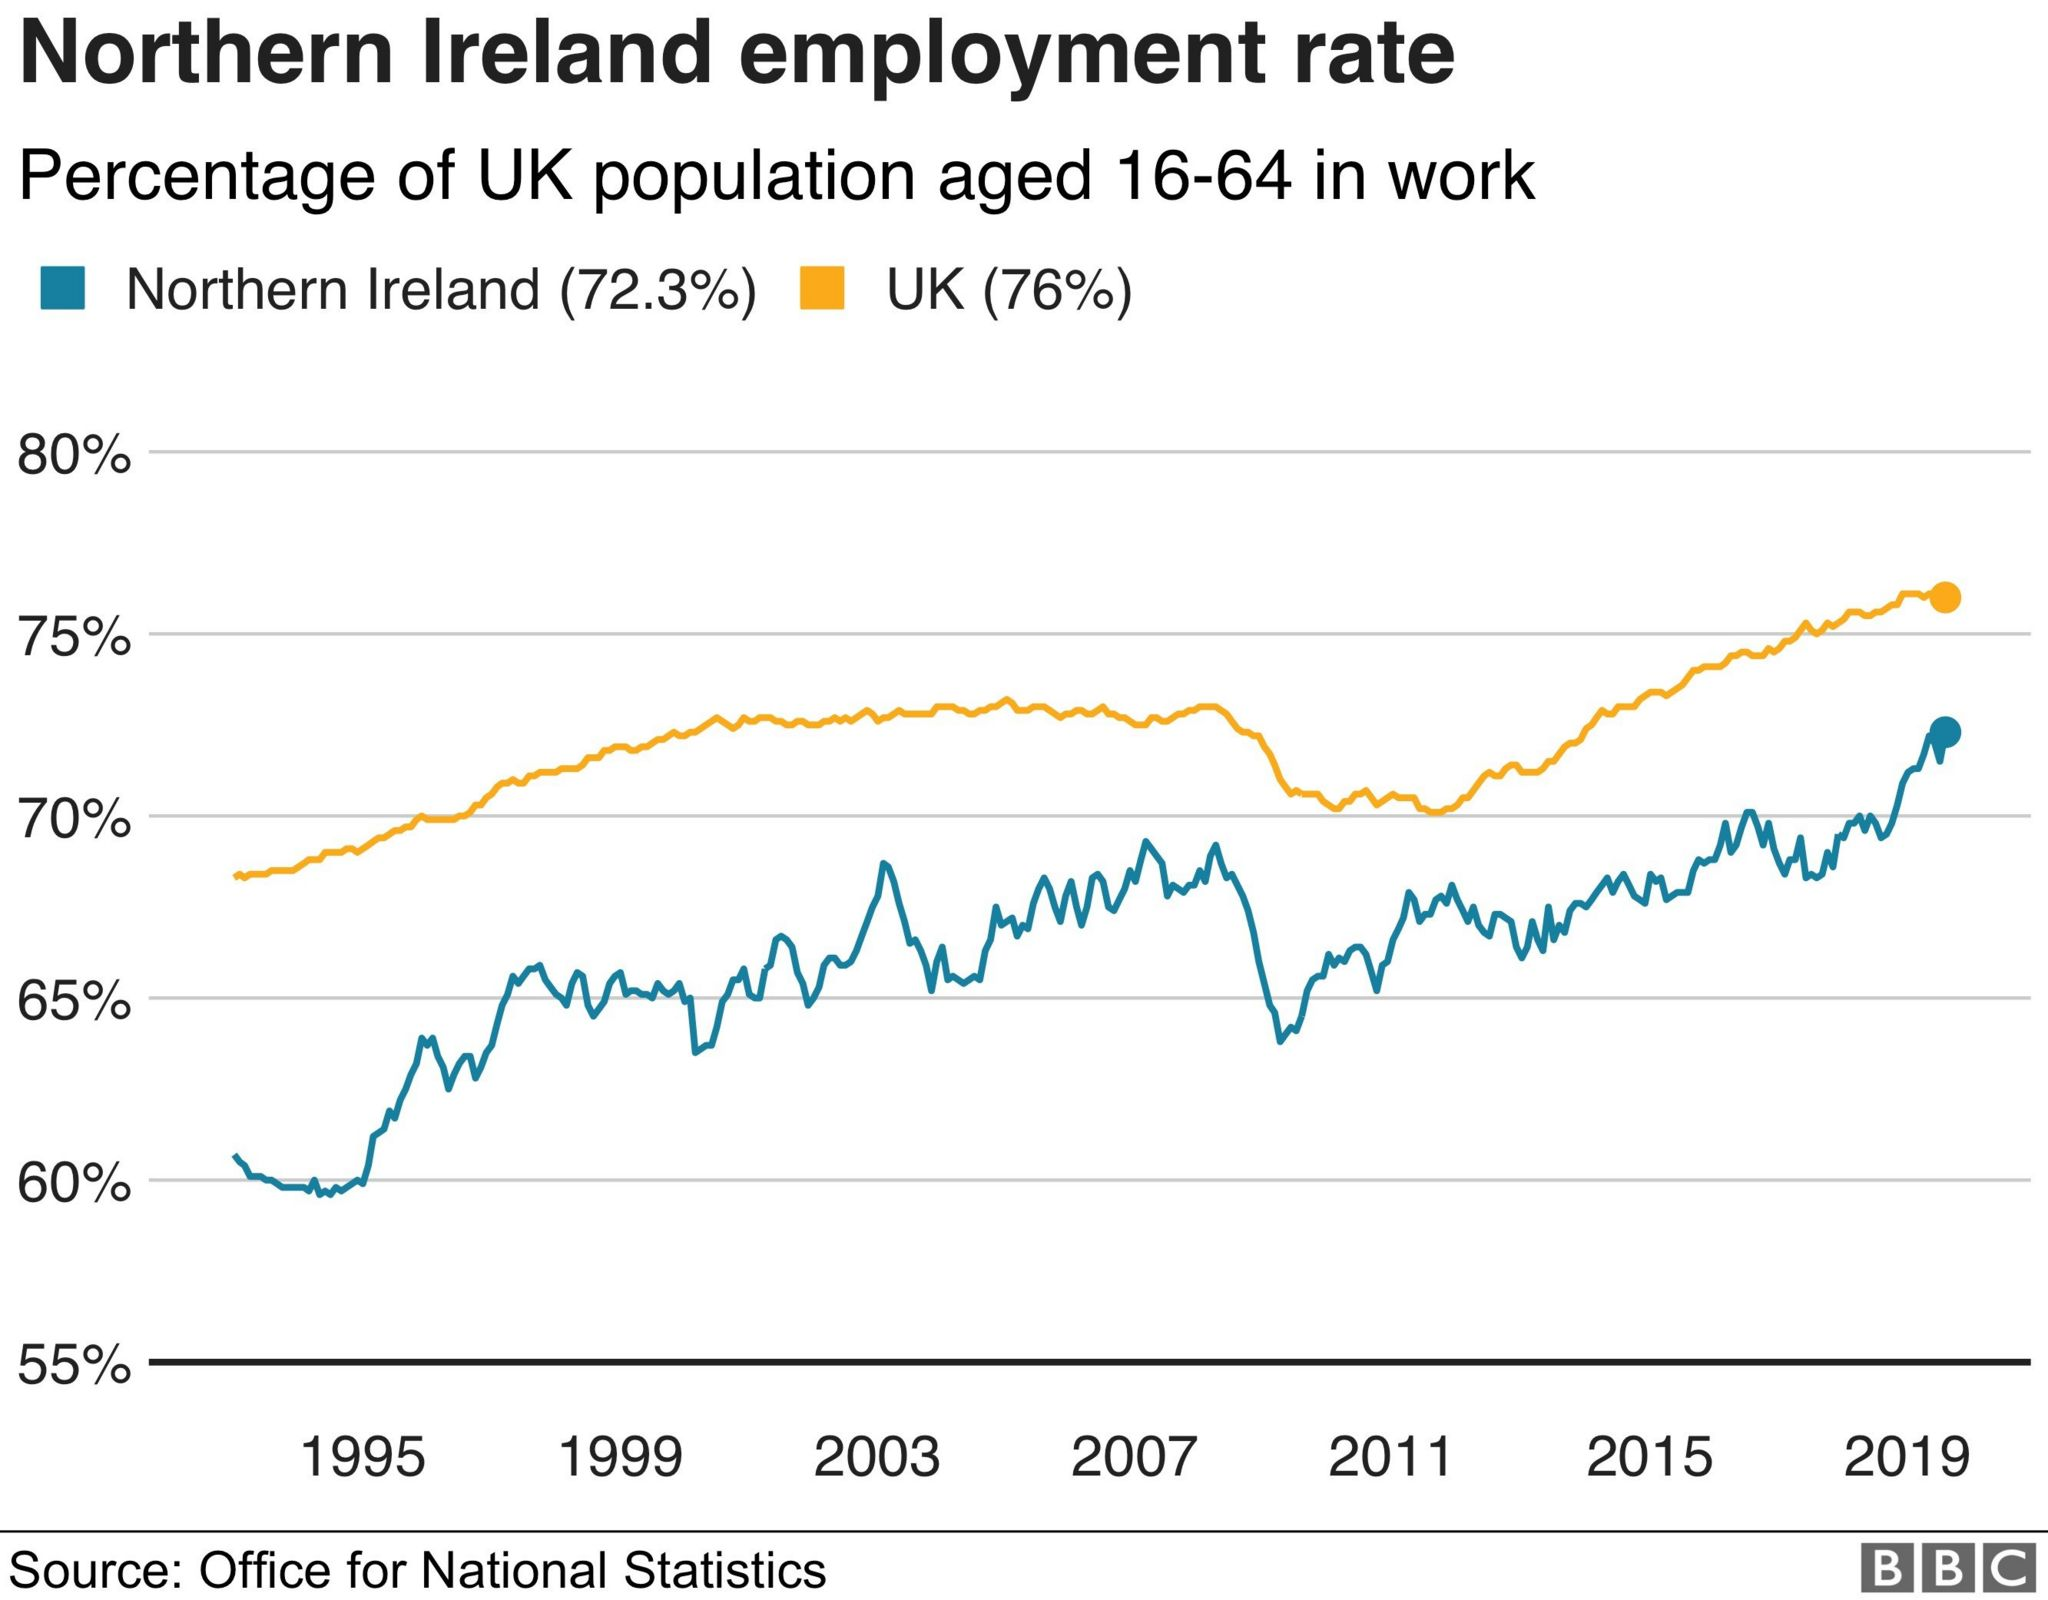 NI employment rate graph